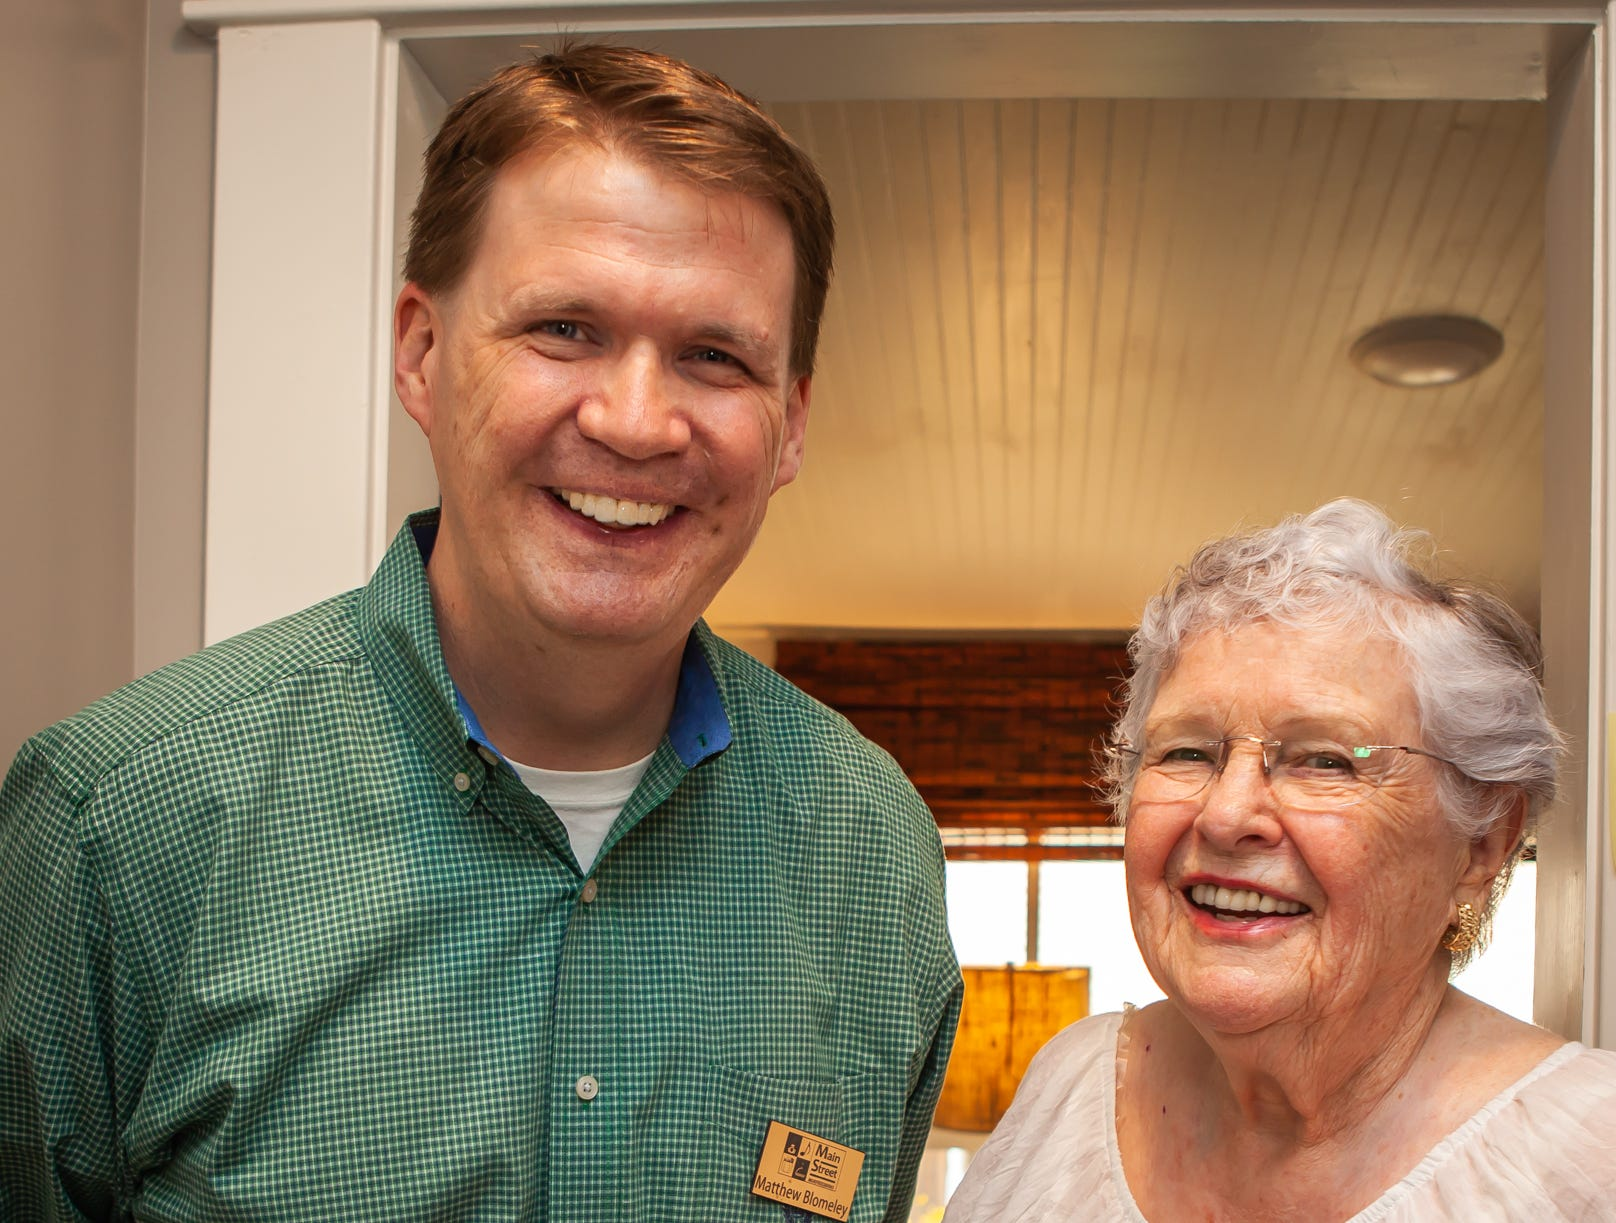 Matthew Blomeley and Mary Baughman at An Evening on Lytle, hosted by Main Street Murfreesboro/Rutherford County. The event was held at the home of Rick and Amy Cottle.